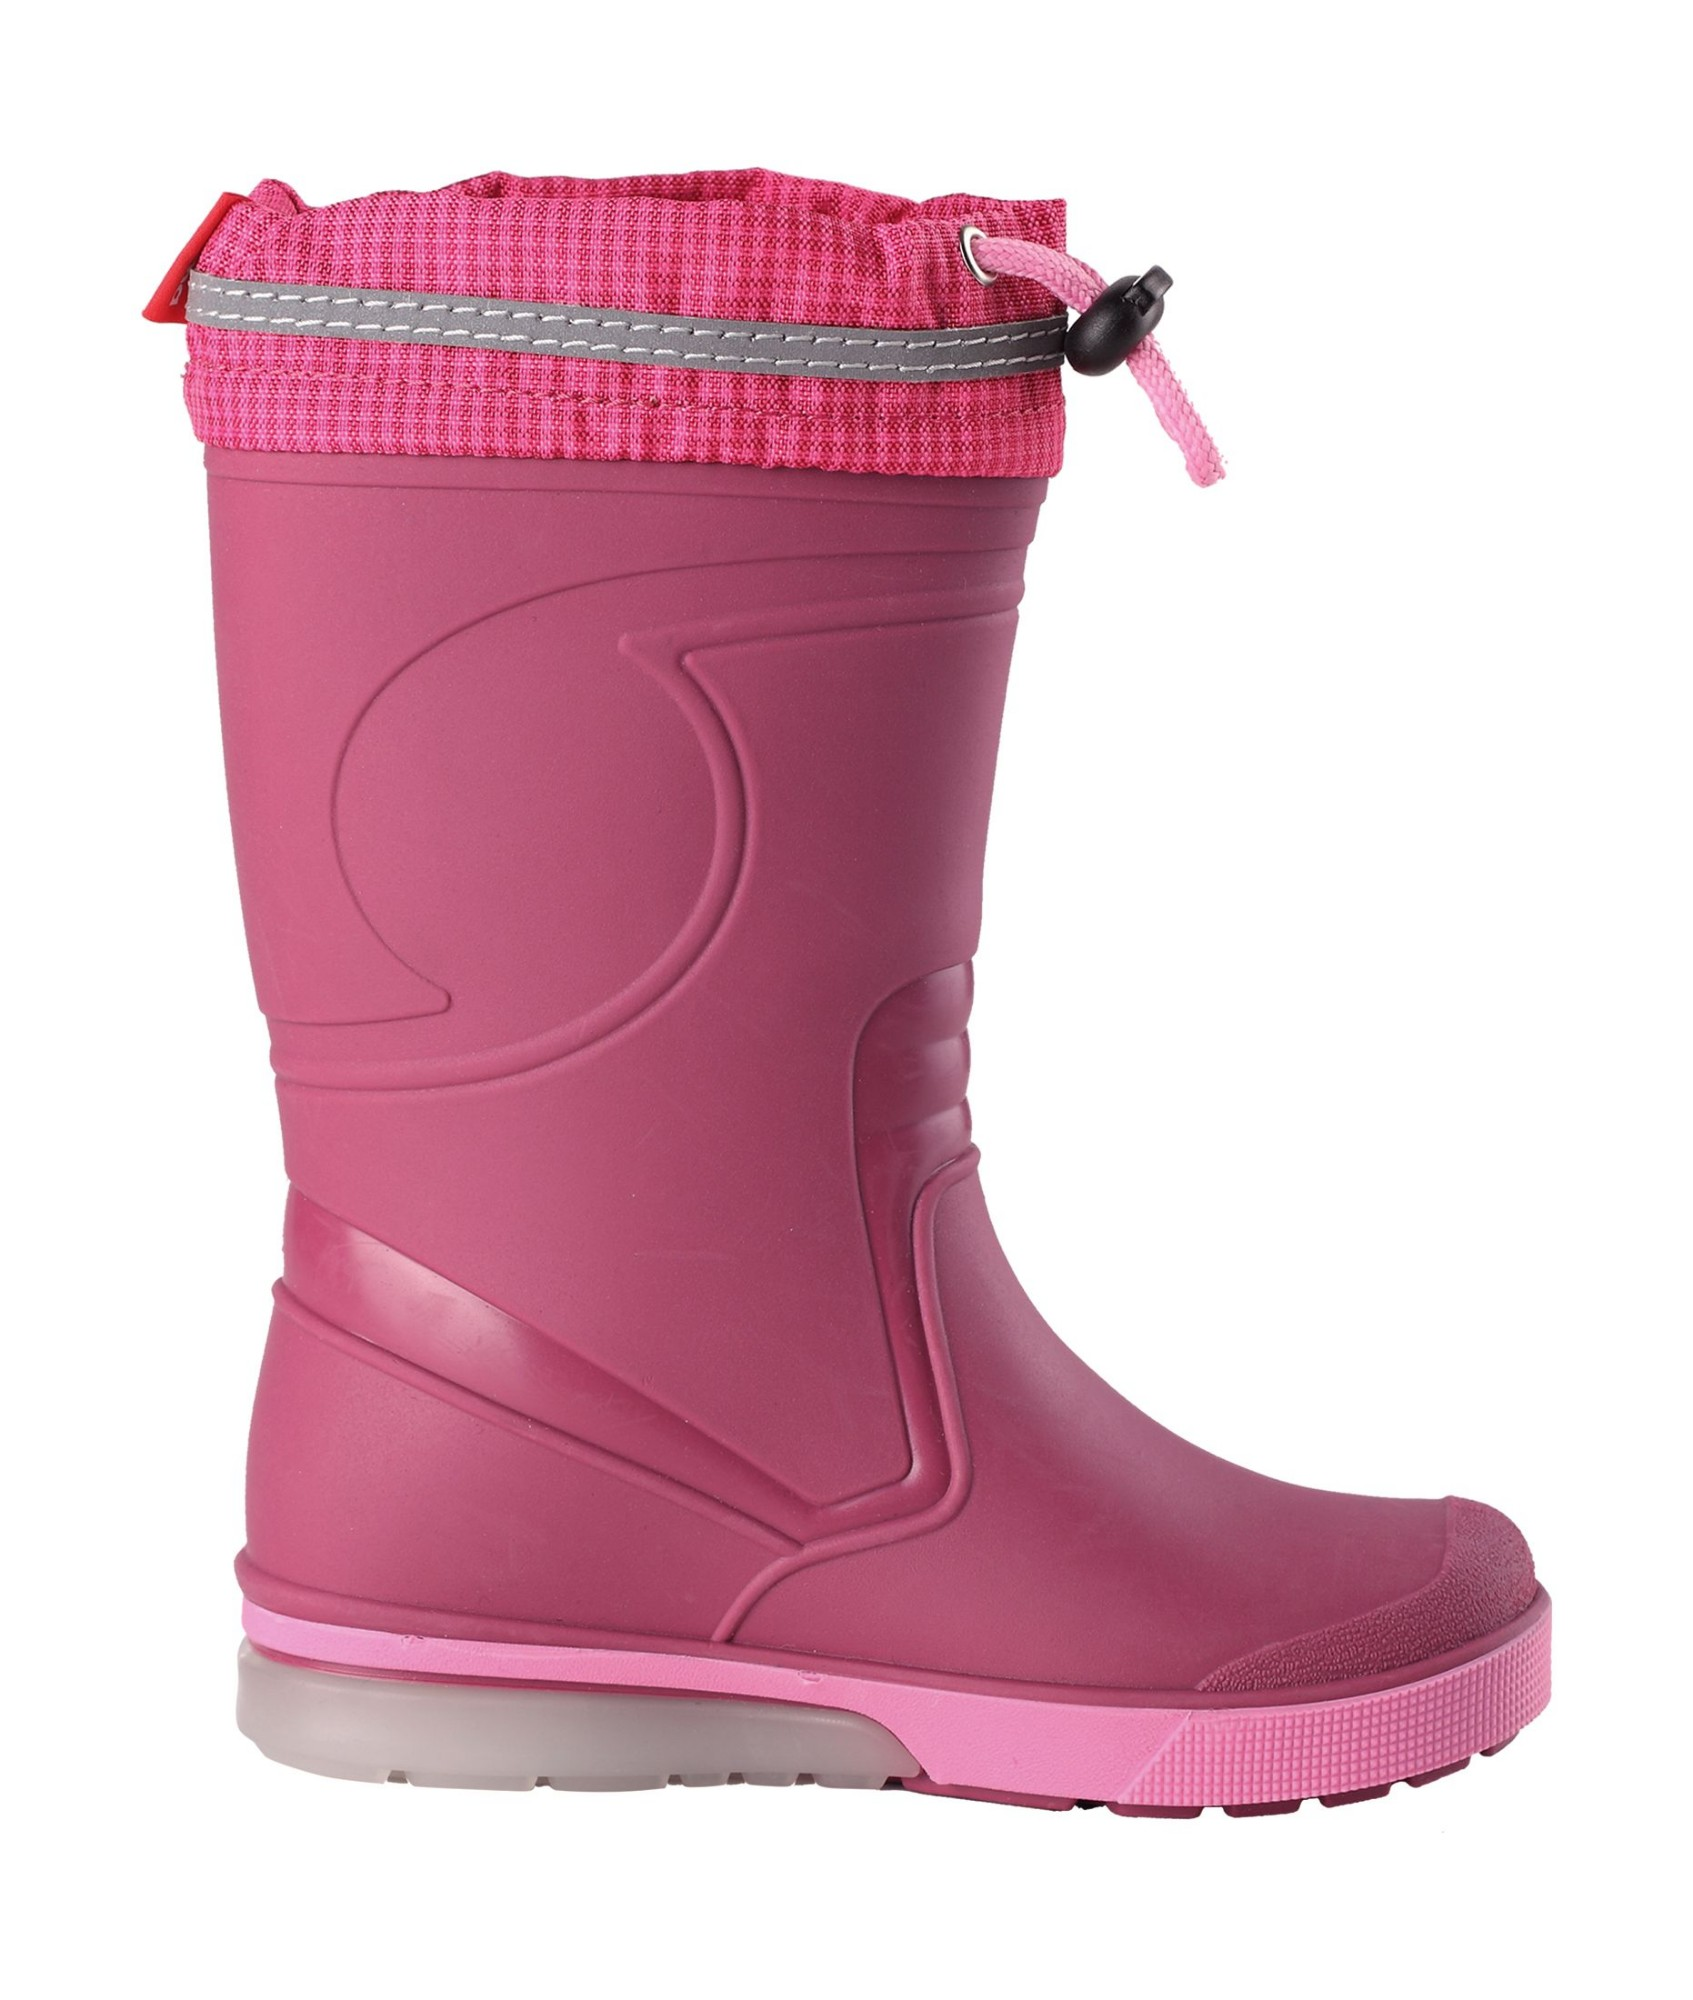 REIMA Twinkle Cranberry Pink 26